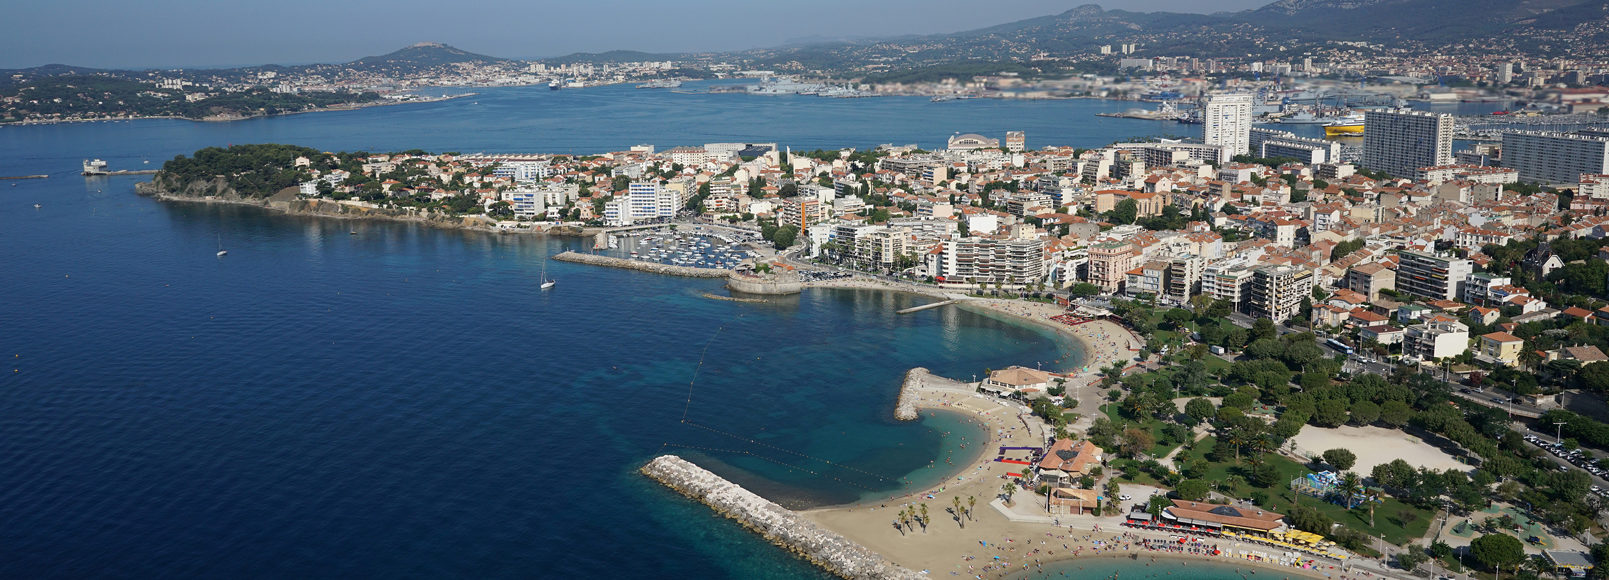 Office de tourisme de toulon site officiel toulon tourisme - Office de tourisme sicile ...